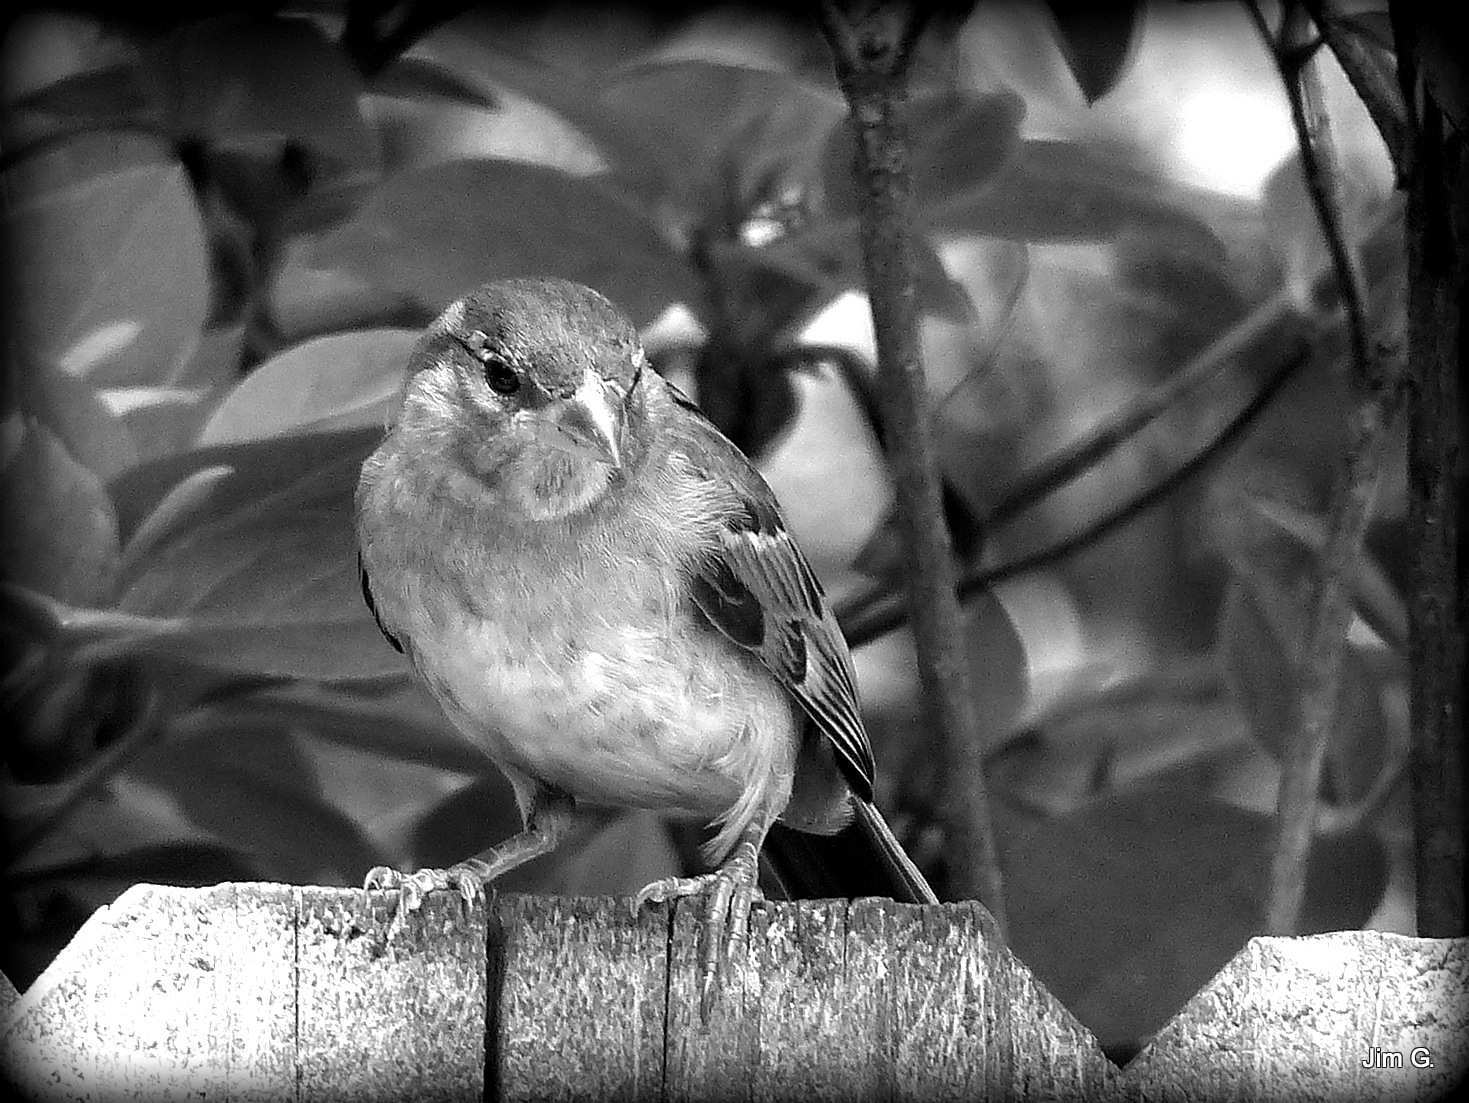 Female Sparrow in Black and White by Jim Graham